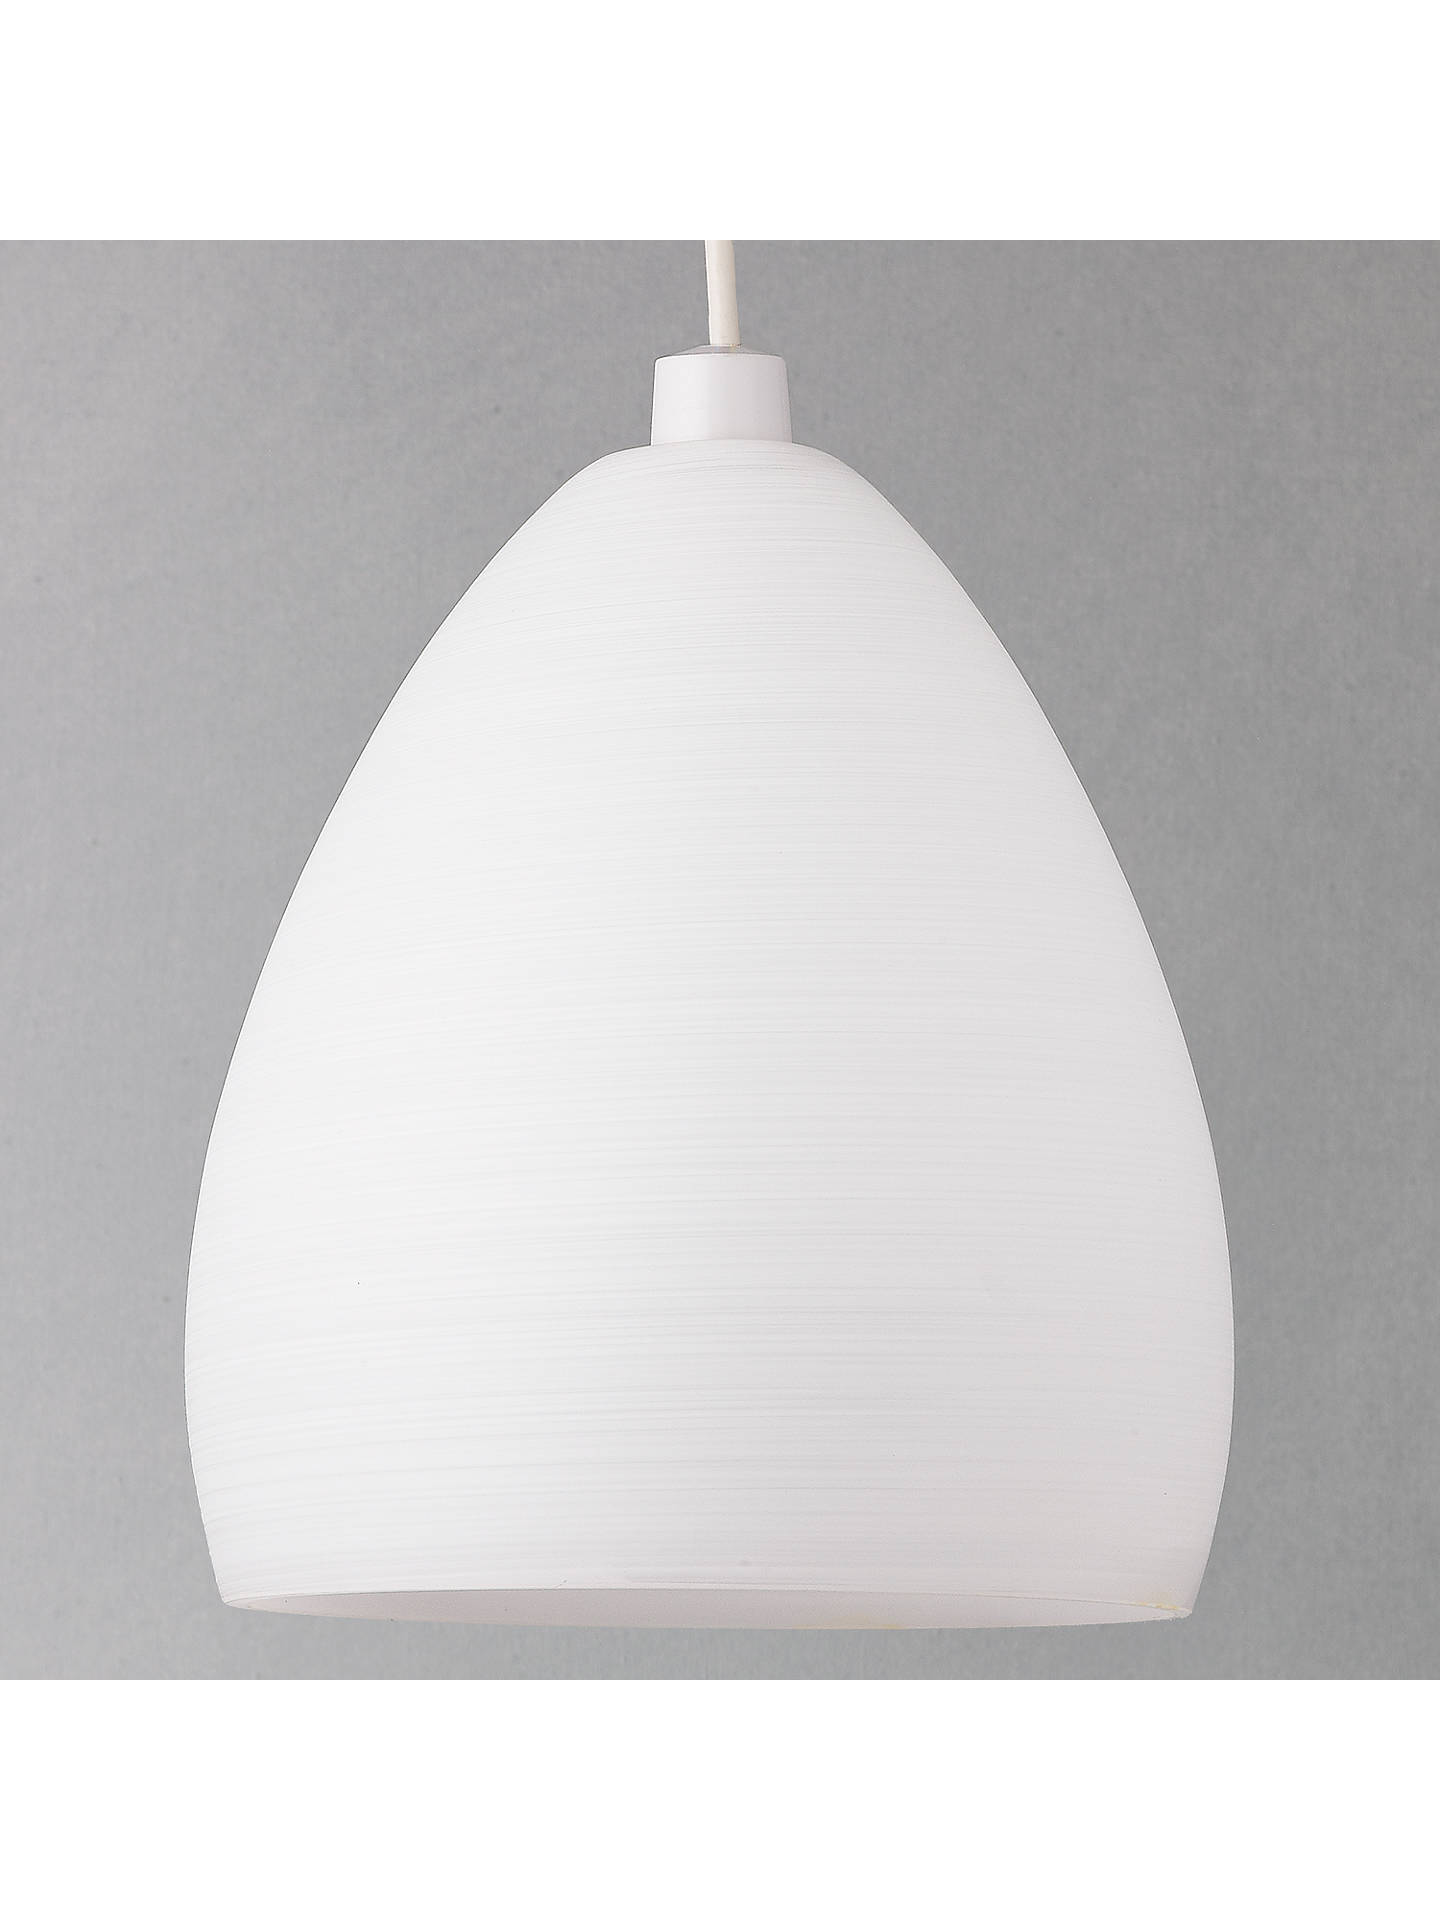 Buy John Lewis & Partners Corina Easy-to-Fit Ceiling Shade Online at johnlewis.com